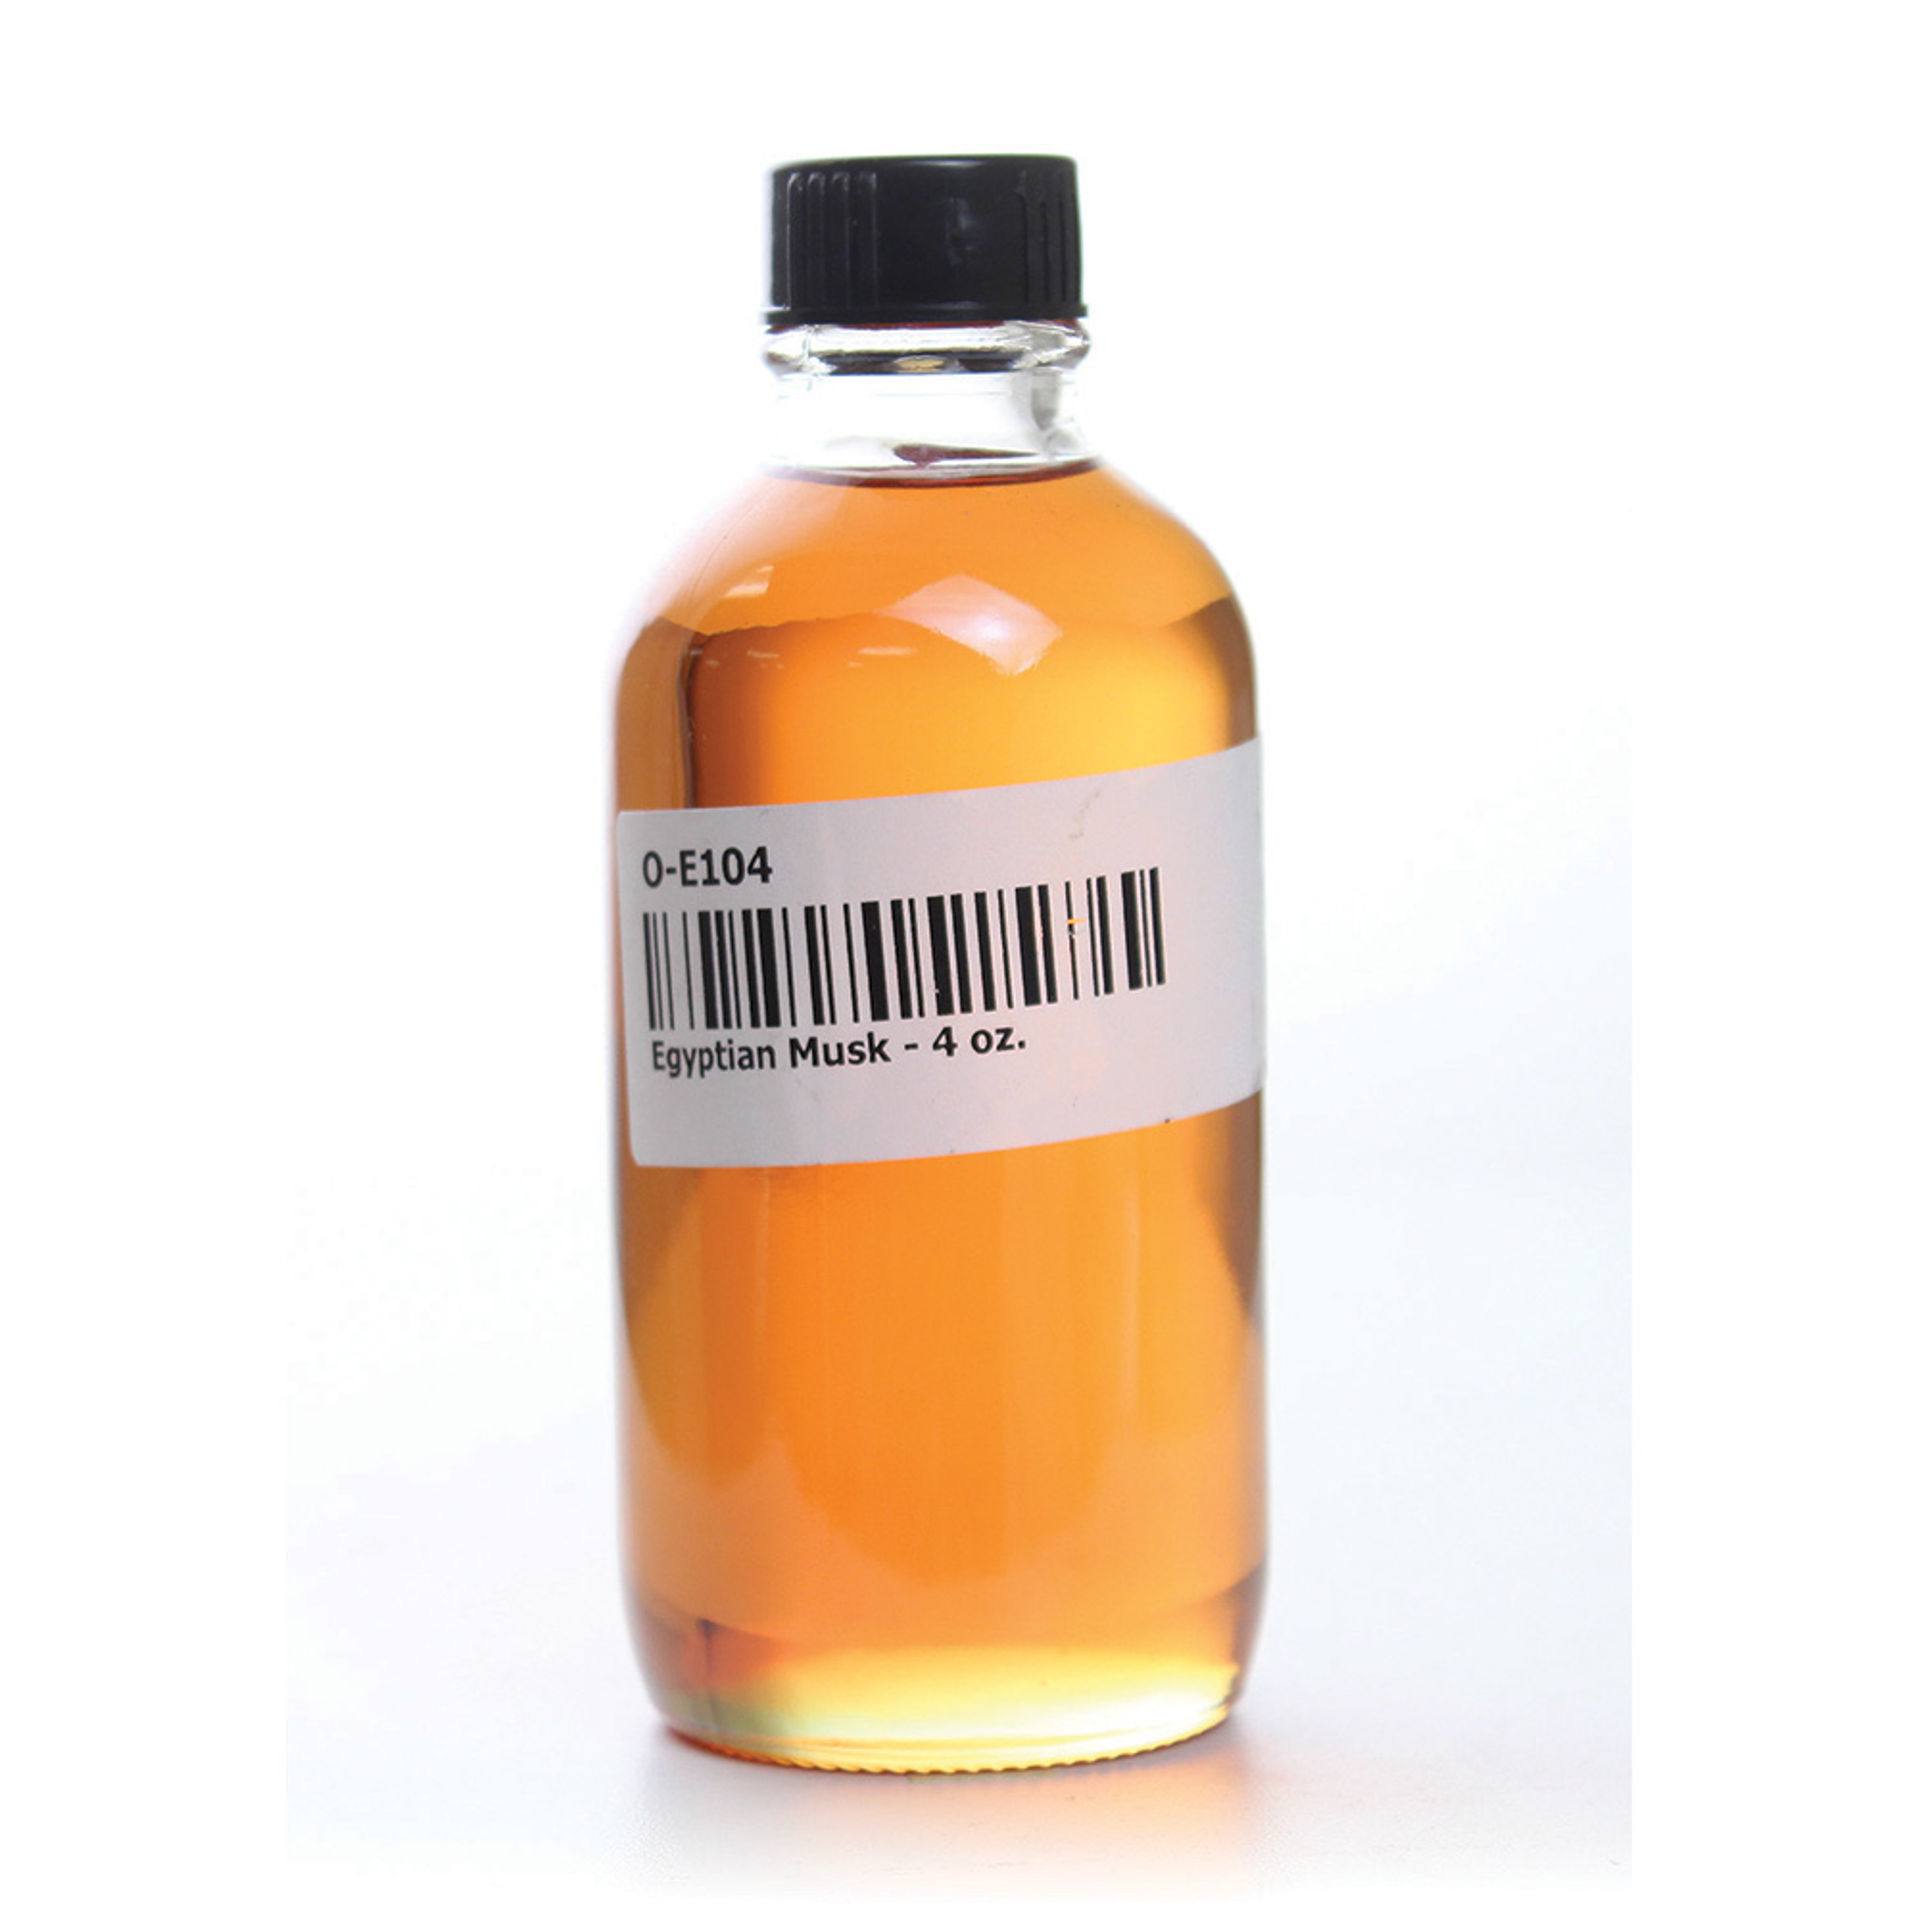 Picture of Egyptian Musk - 4 oz.